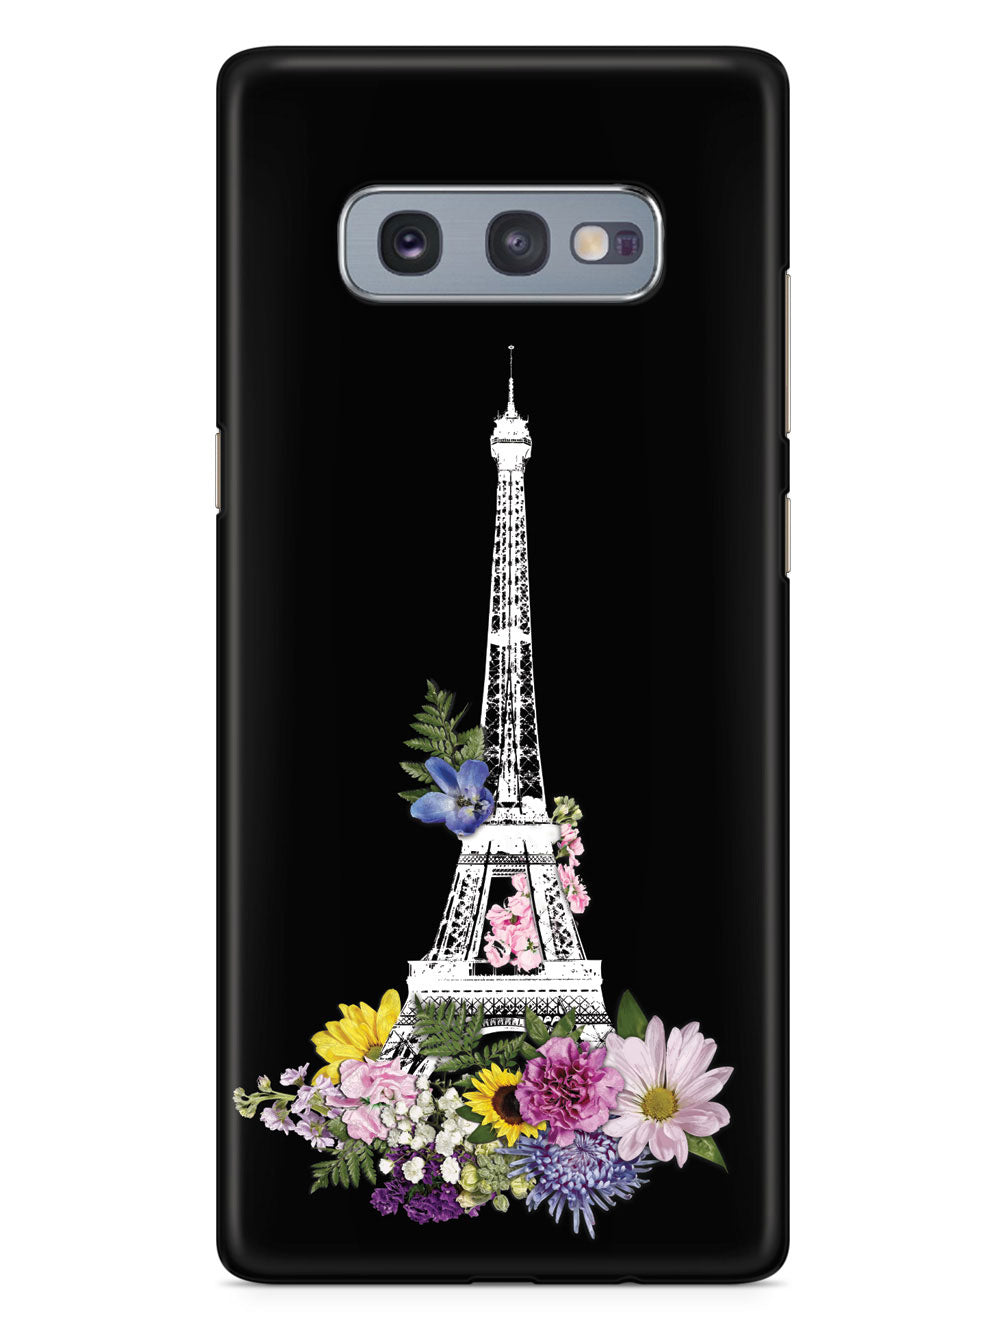 Eiffel Tower Drawing and Flowers - Black Case